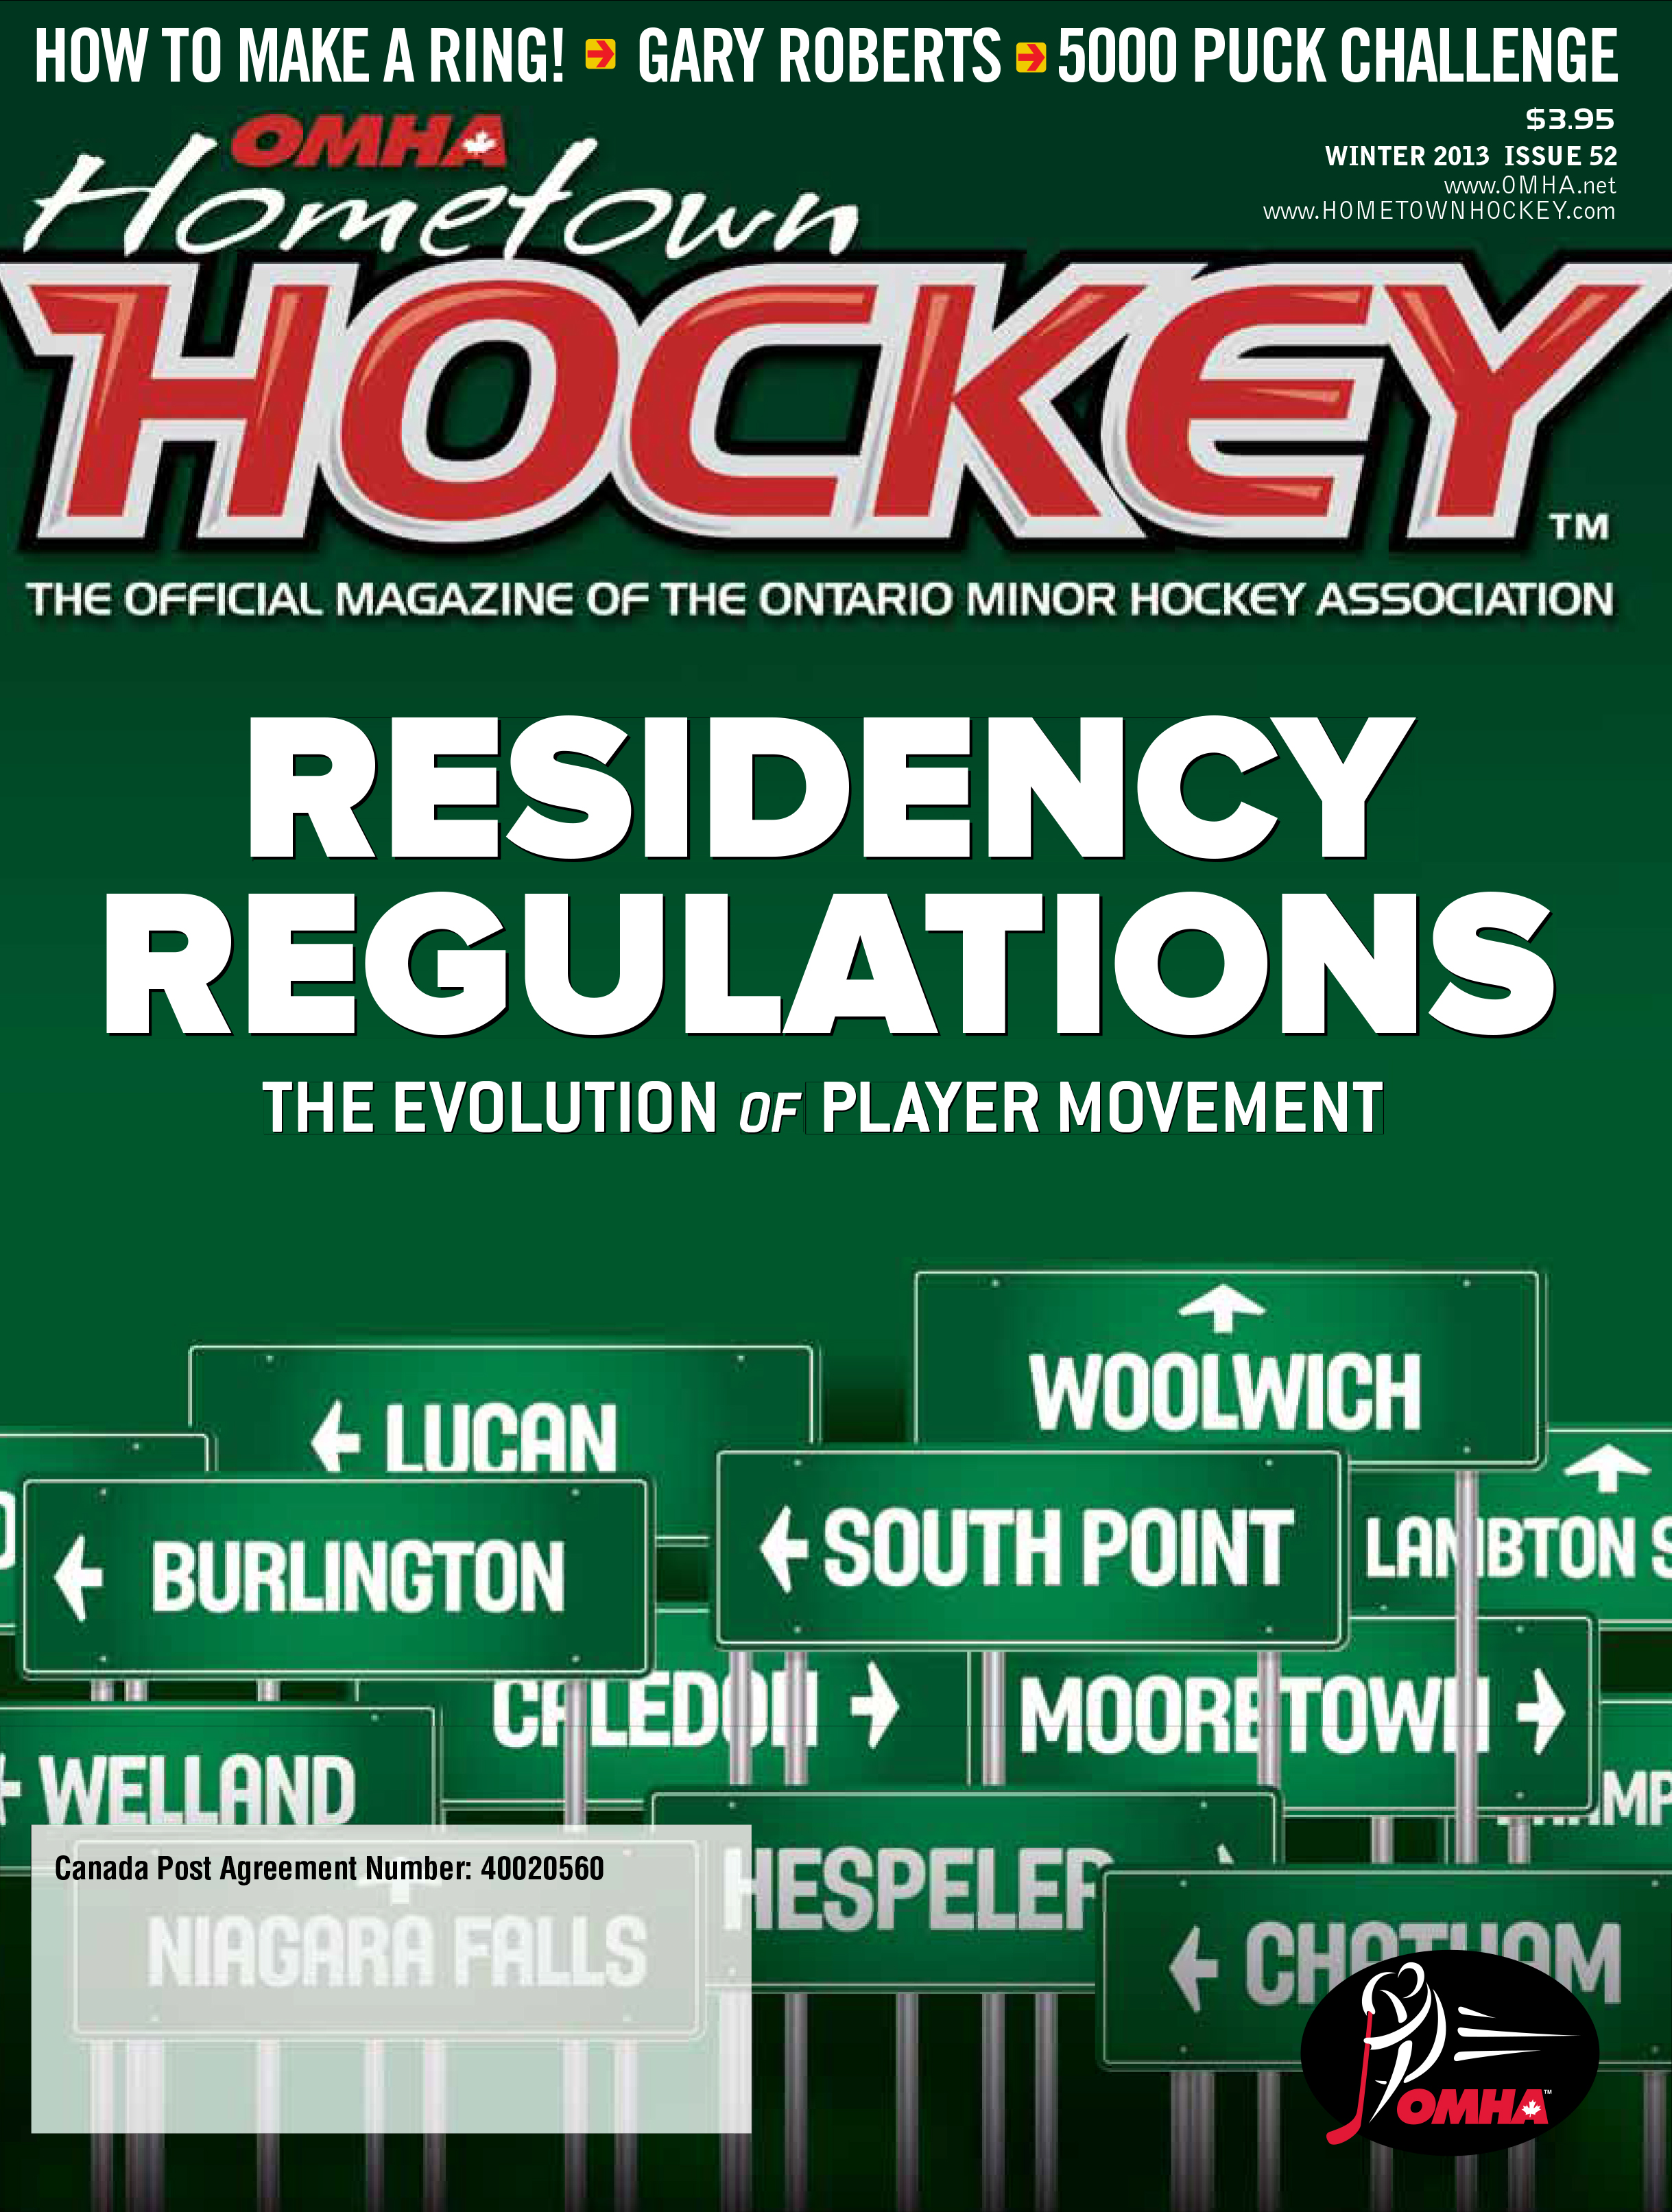 OMHA Hometown Hockey Winter 2013